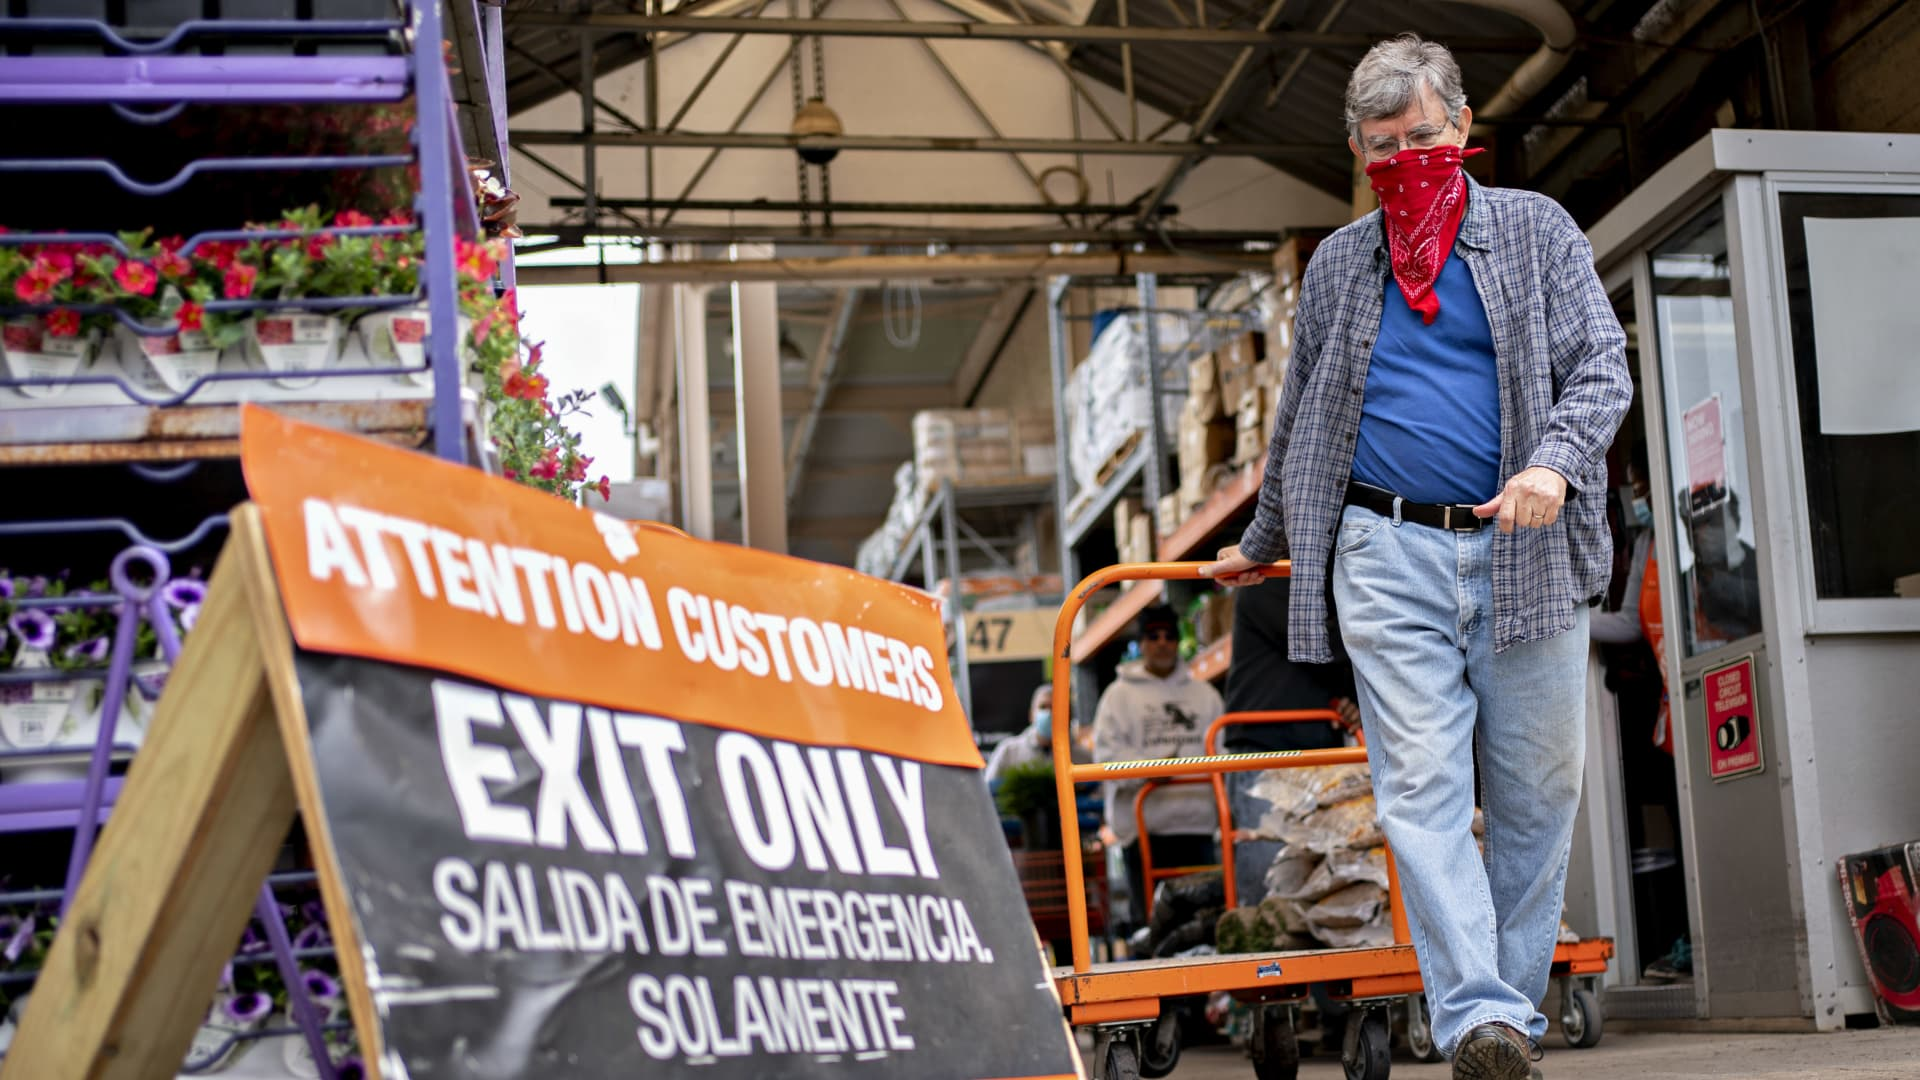 A customer wears a protective mask while pulling a cart outside a Home Depot Inc. store in Reston, Virginia, U.S., on Thursday, May 21, 2020.